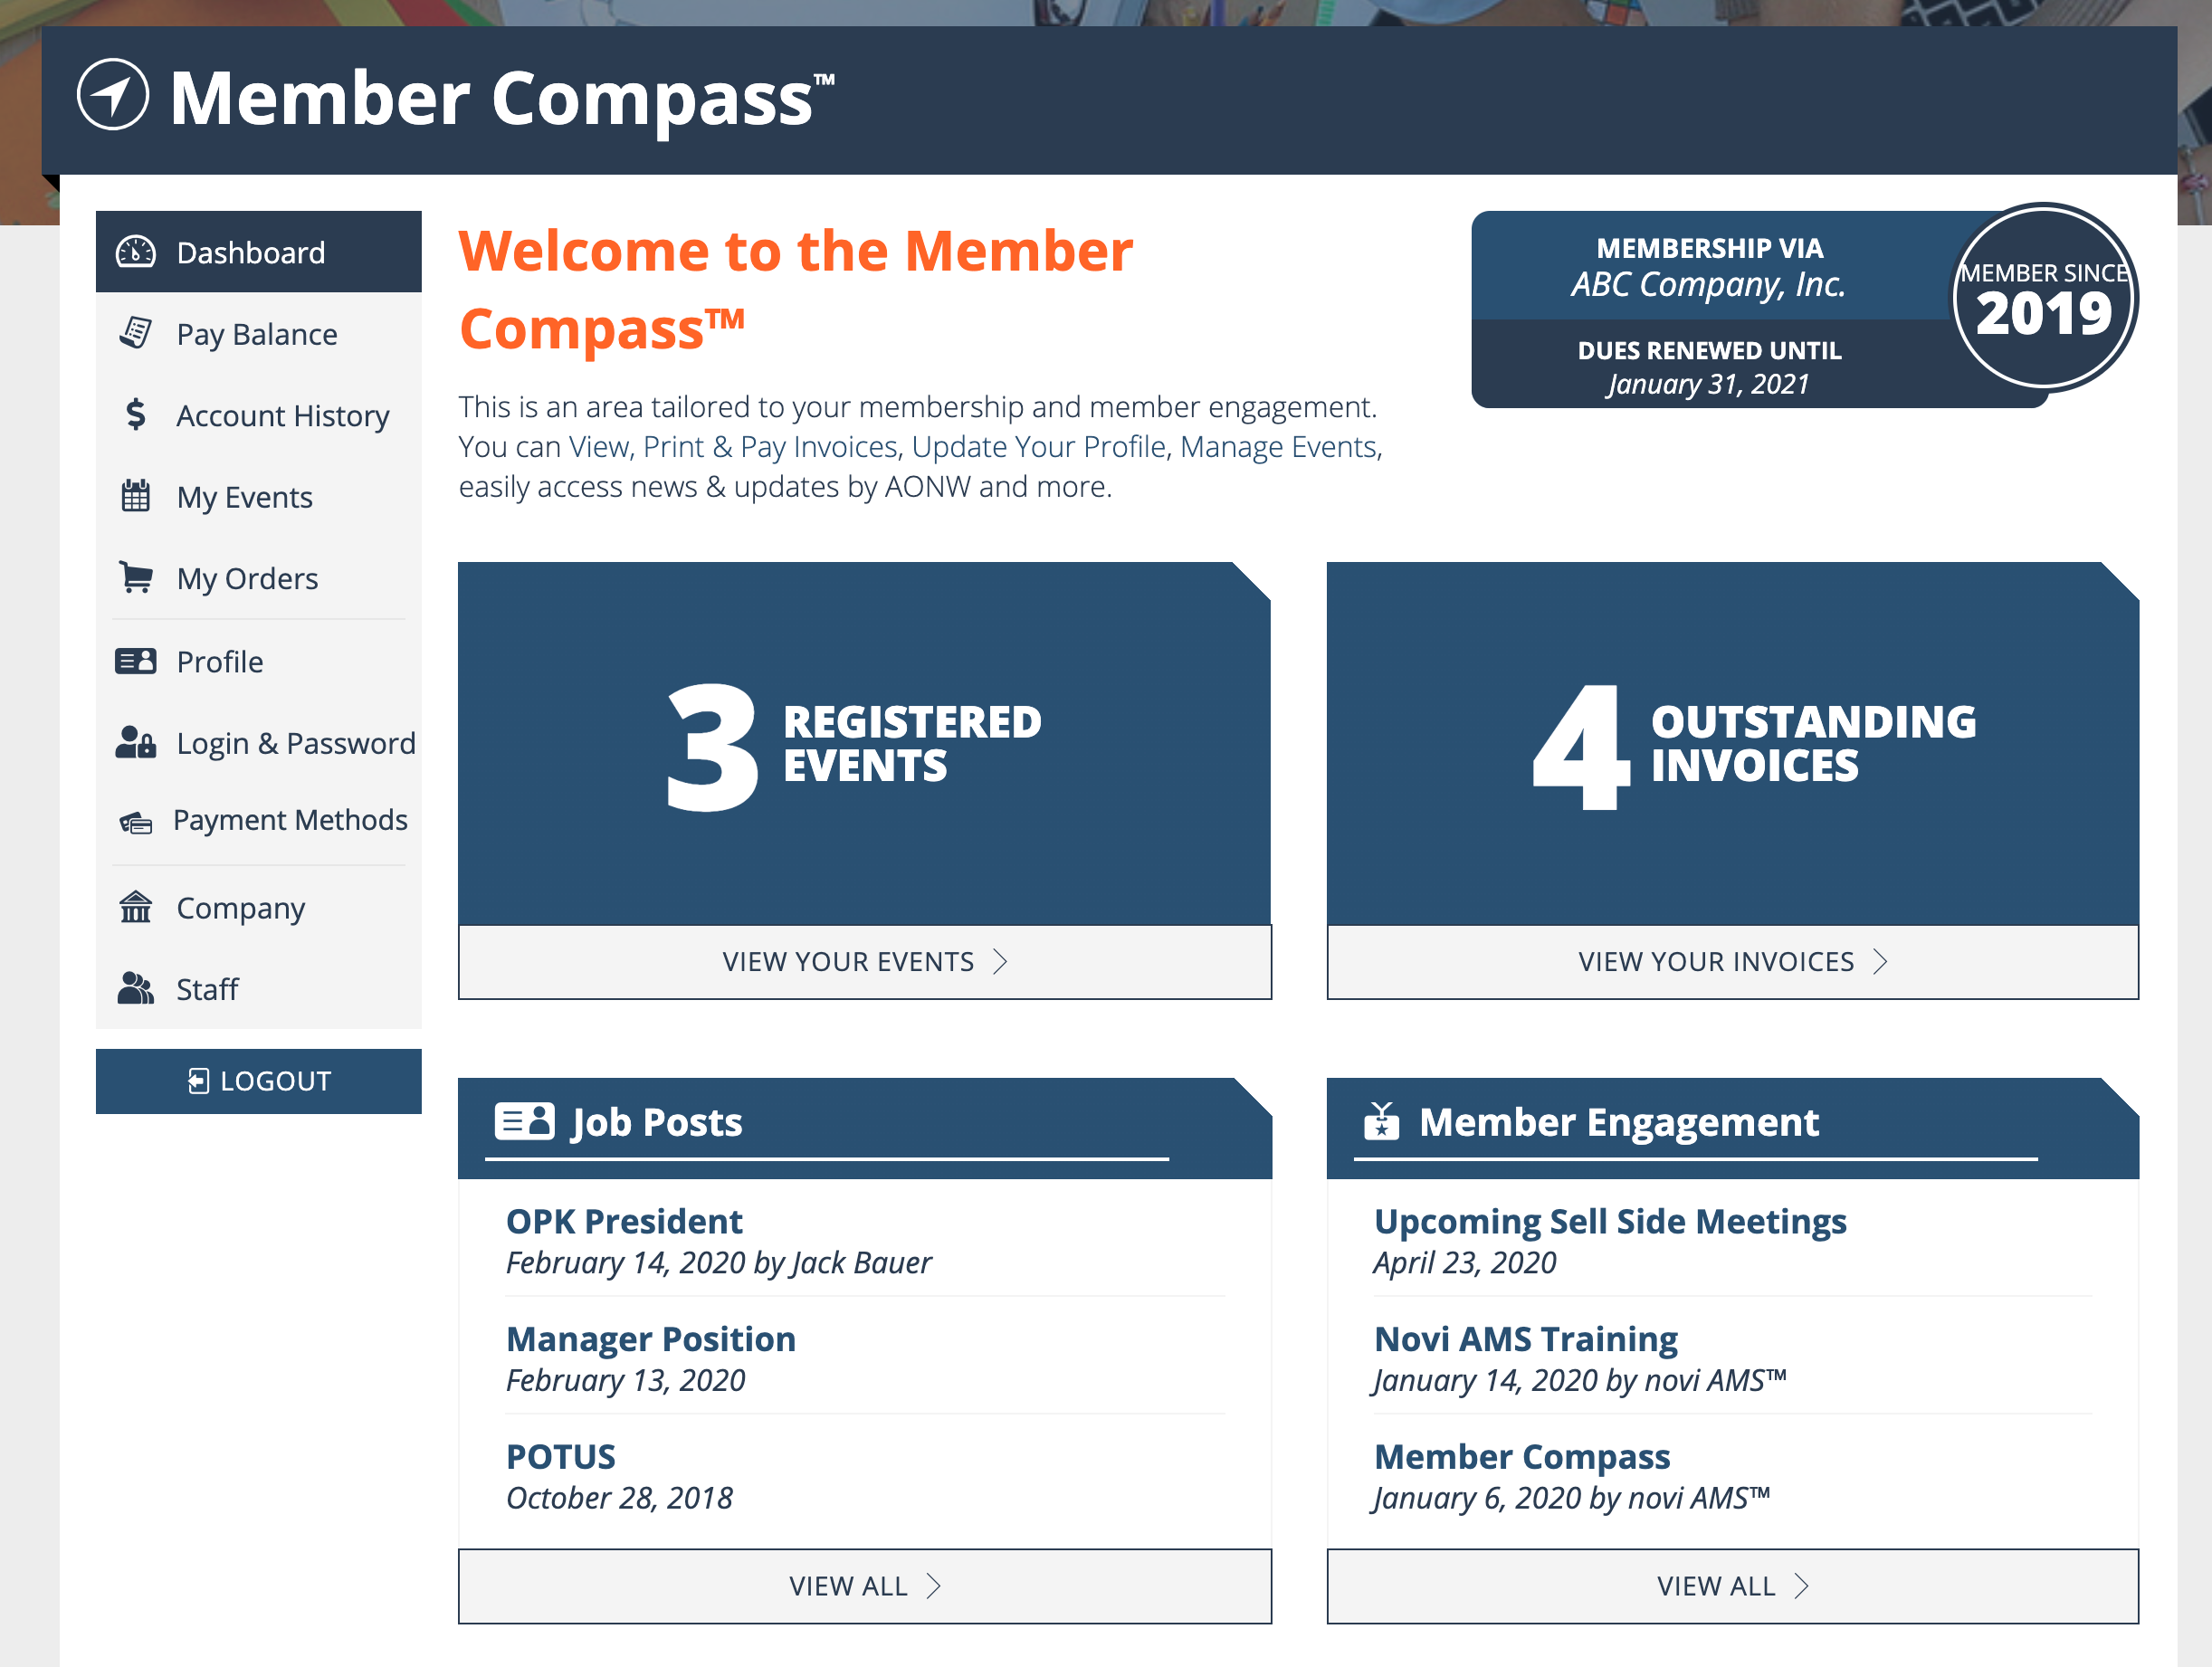 Member Compass Dashboard